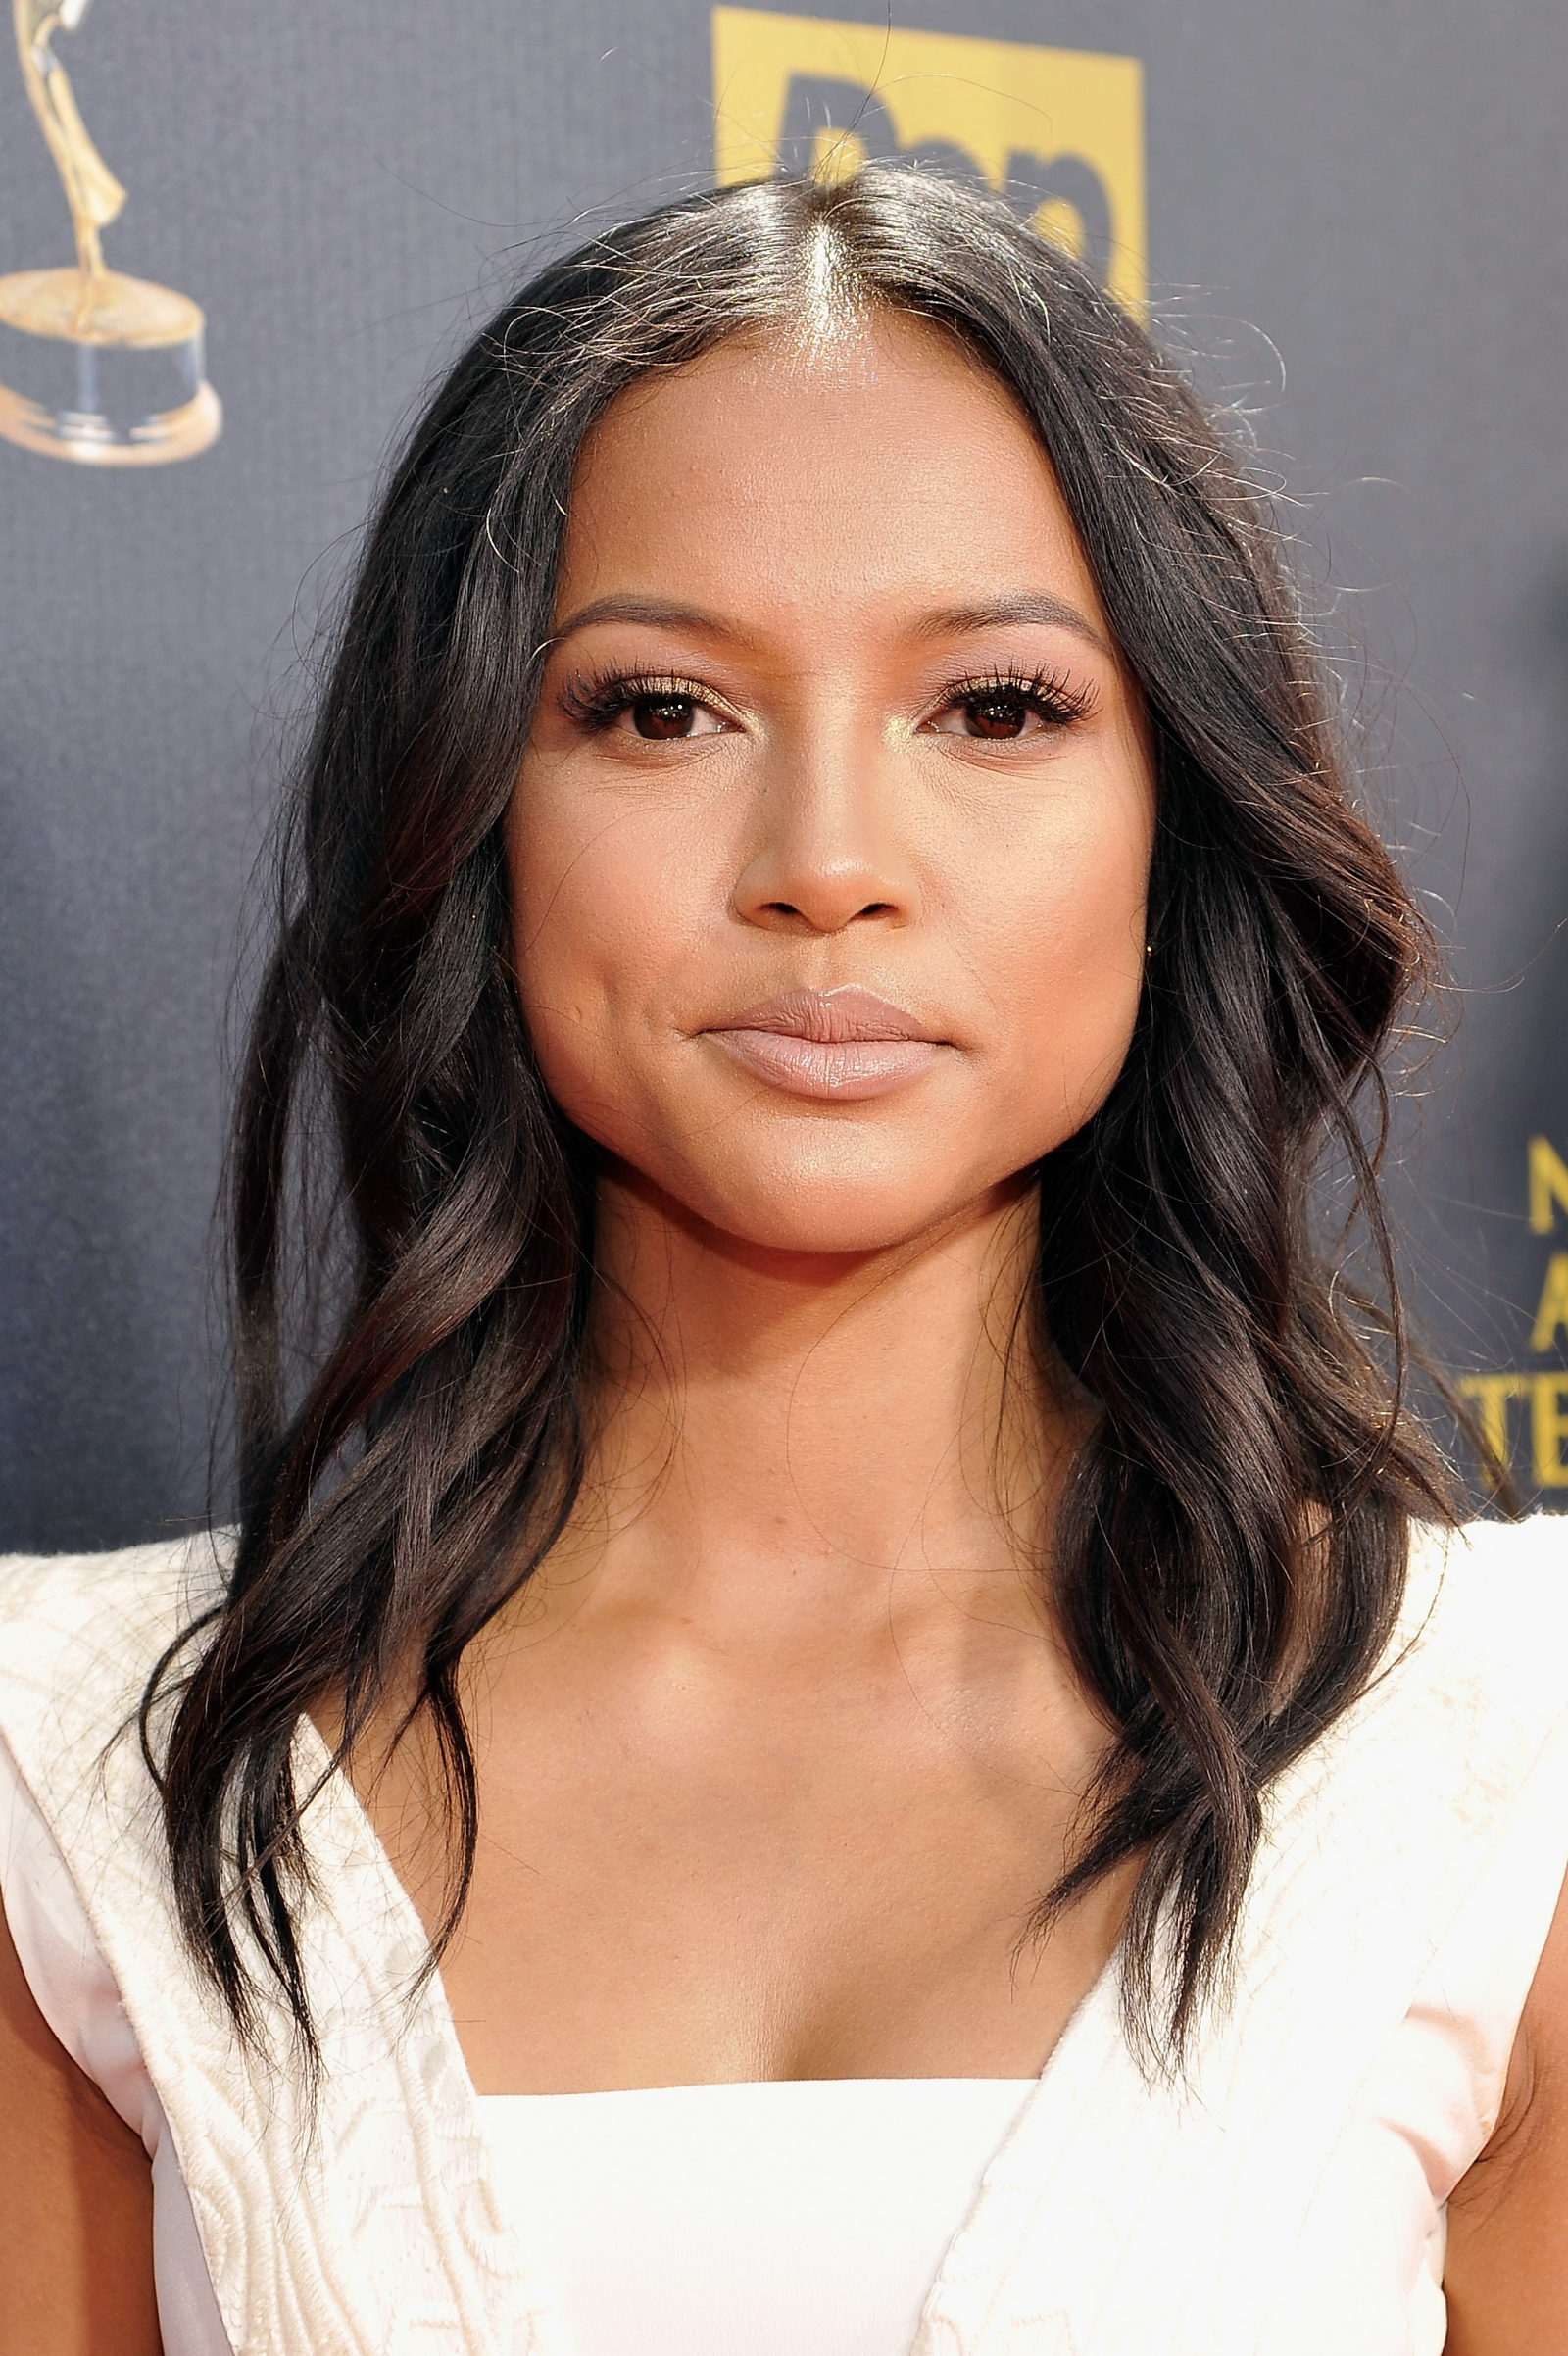 Fall Baby Animal Wallpaper Karrueche Tran Admits She Is Mentally Not Ready To Date